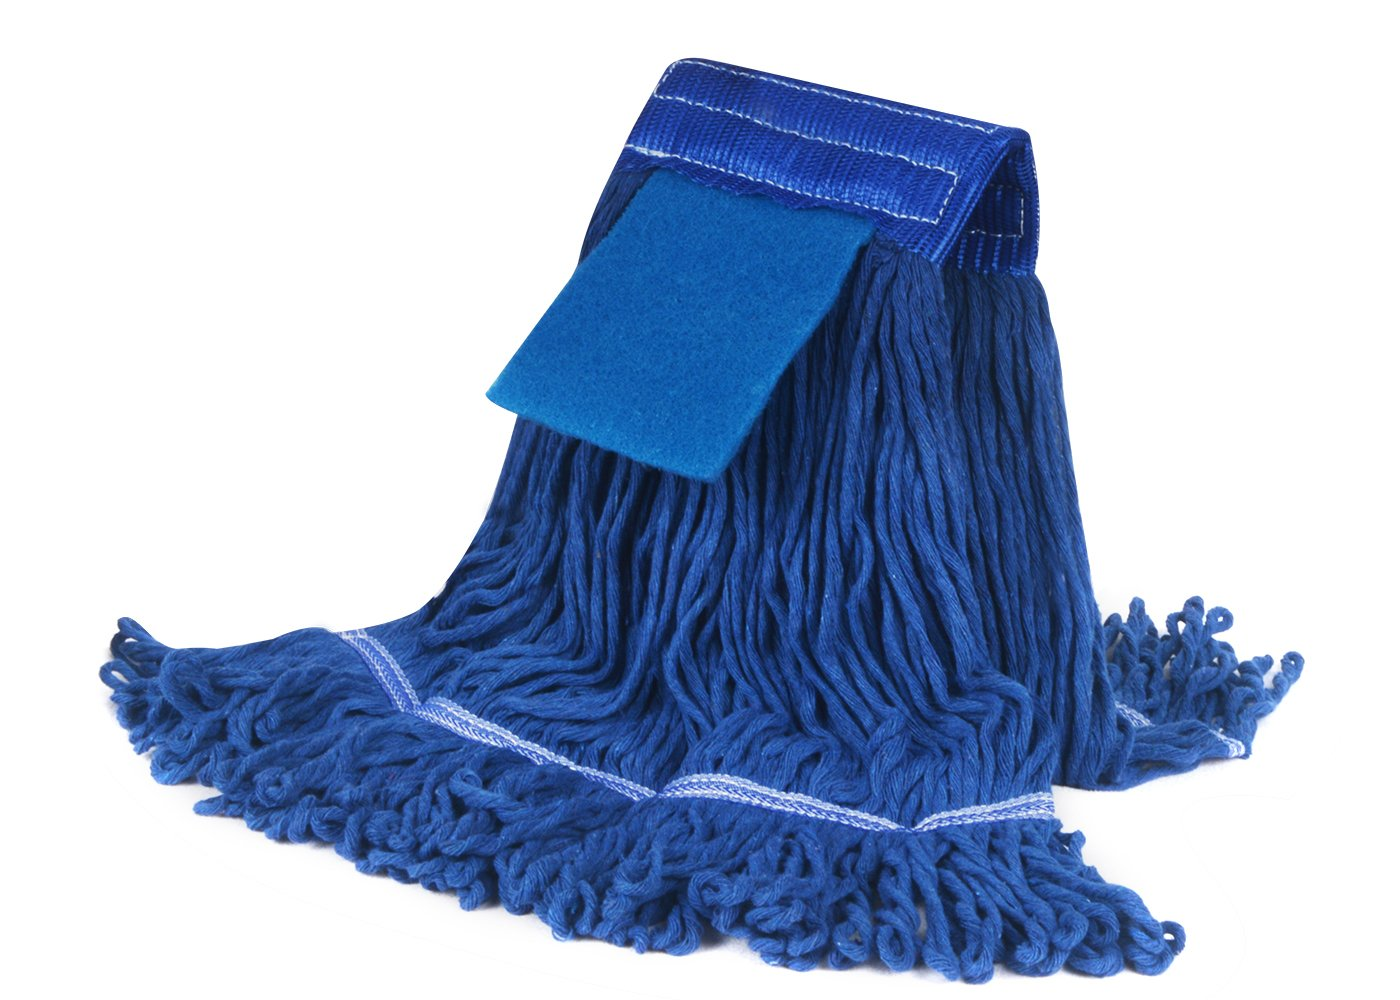 SUNLAND 16 oz Cotton Mop Head Industrial Grade Floor Cleaning Saddle Wet Mop Head Refill Home Commercial Mop Heads Replacement Blue